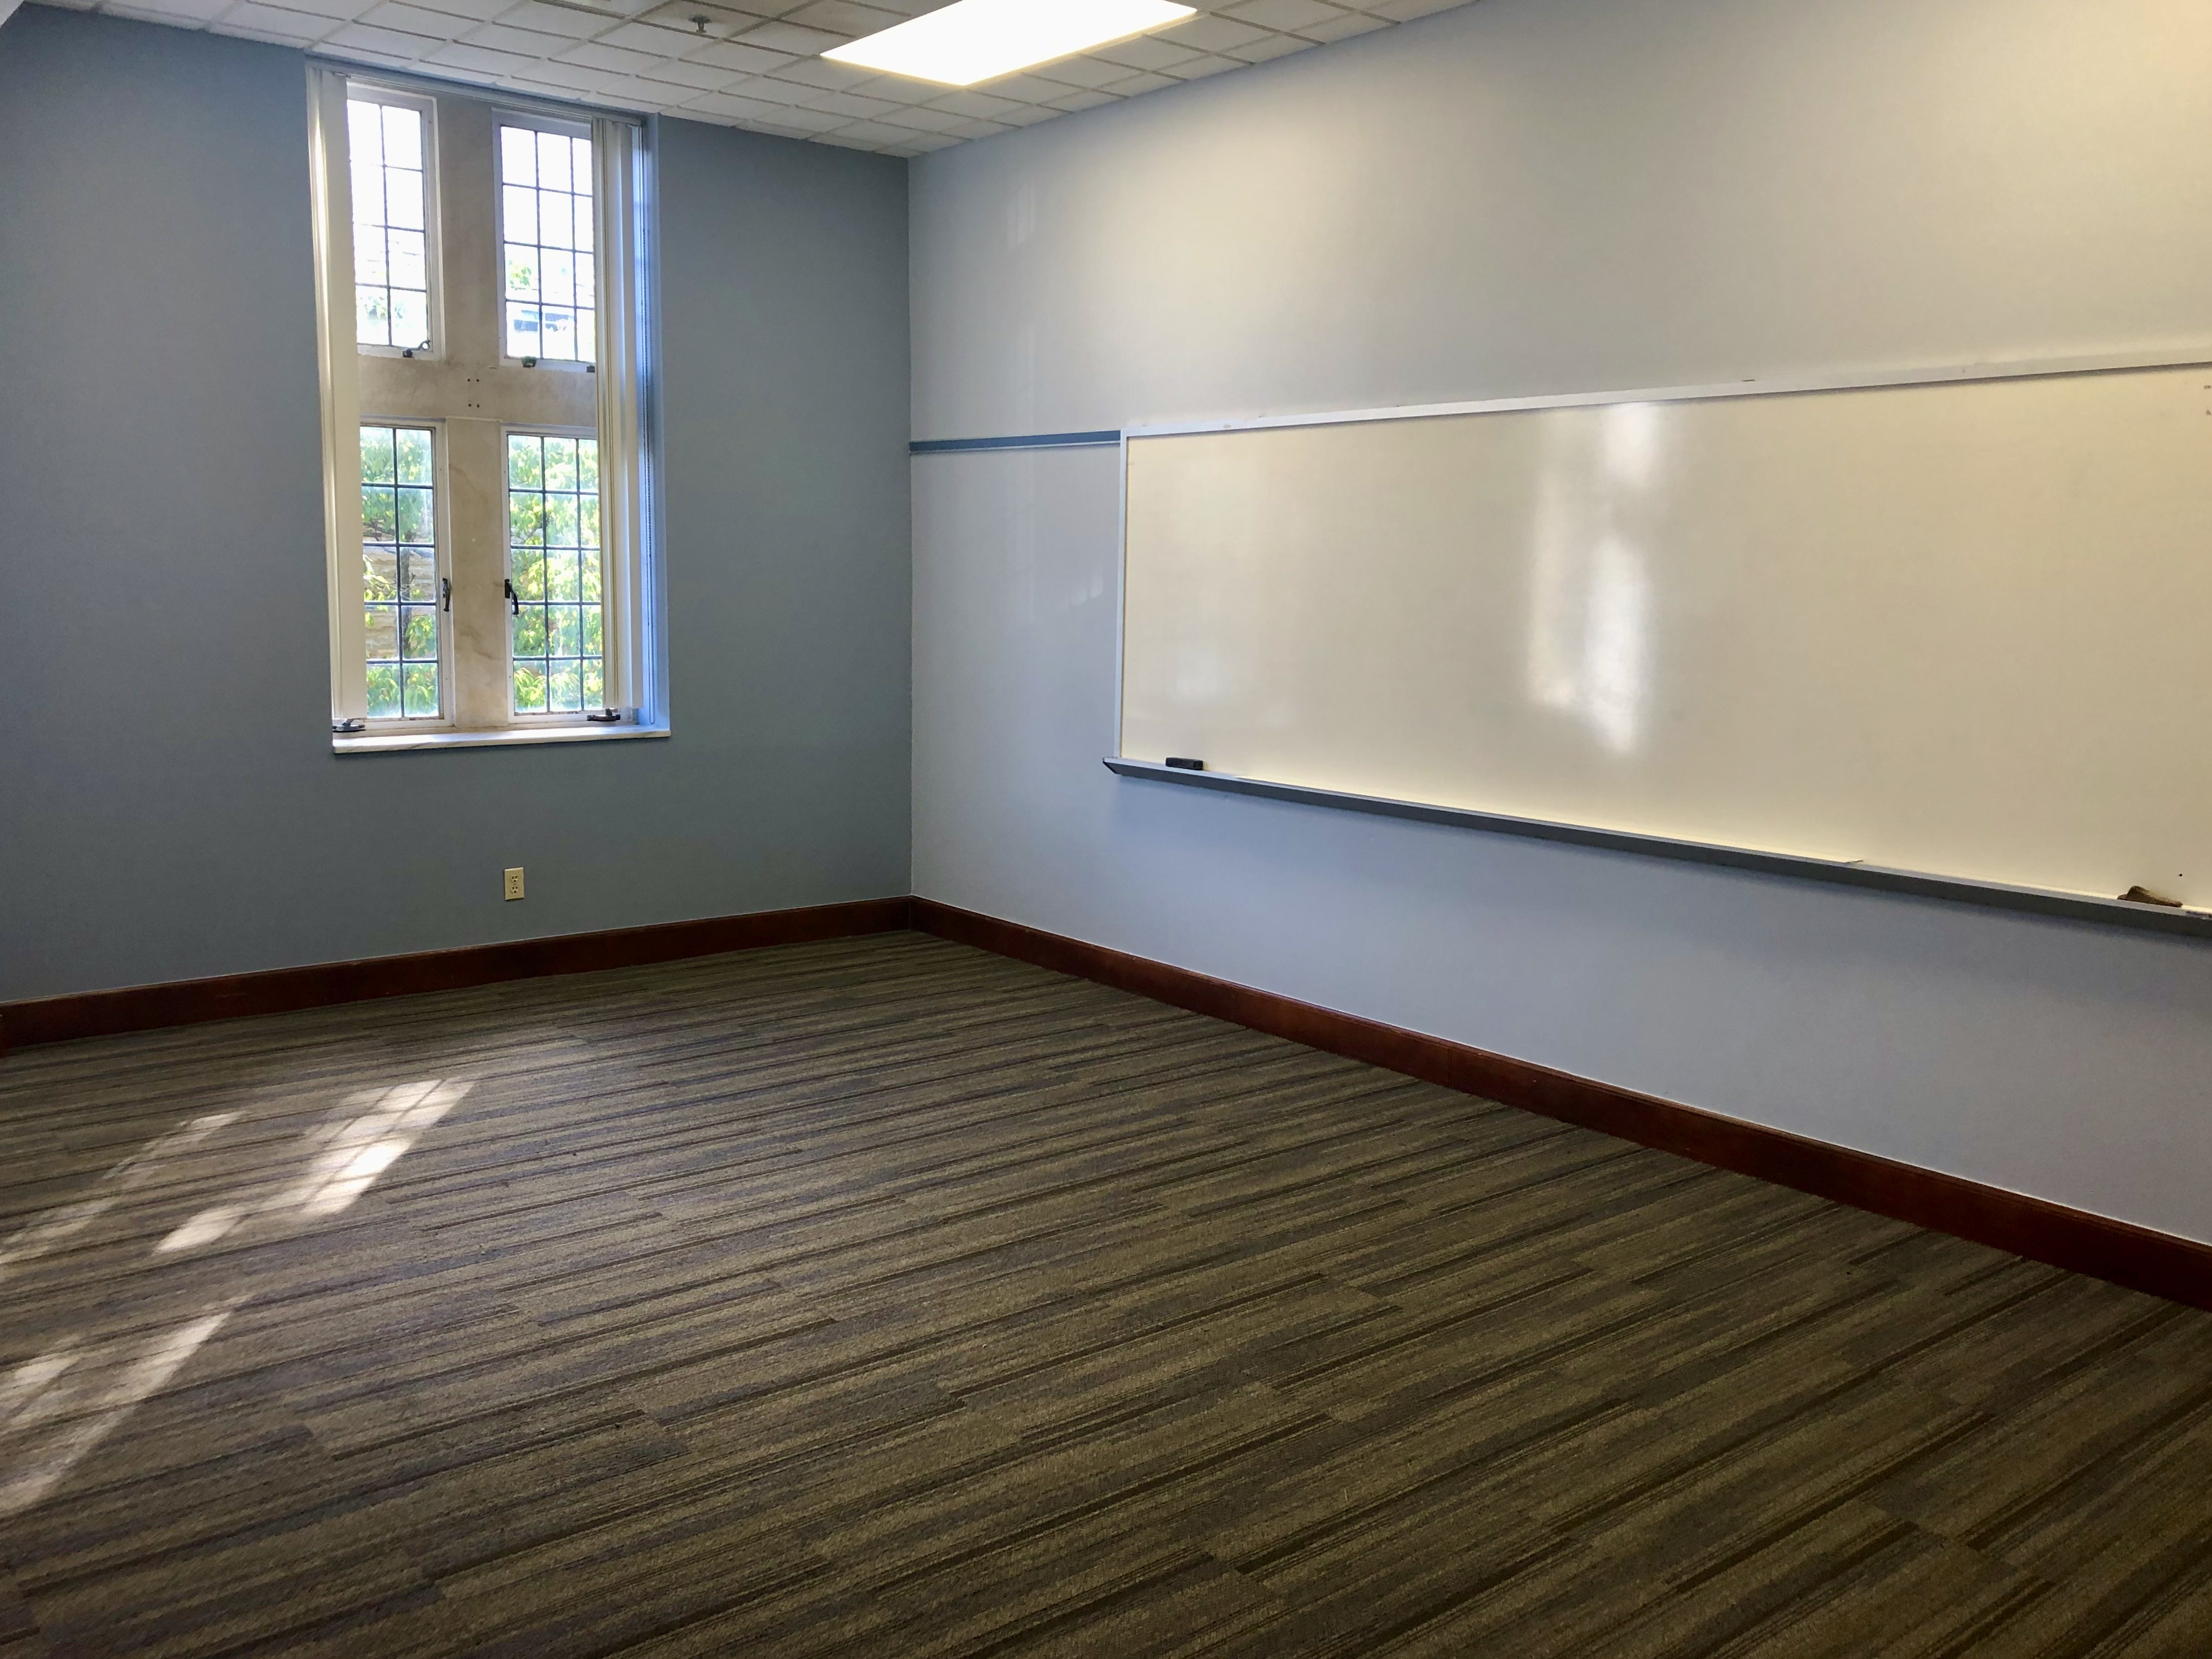 Small classroom with white board